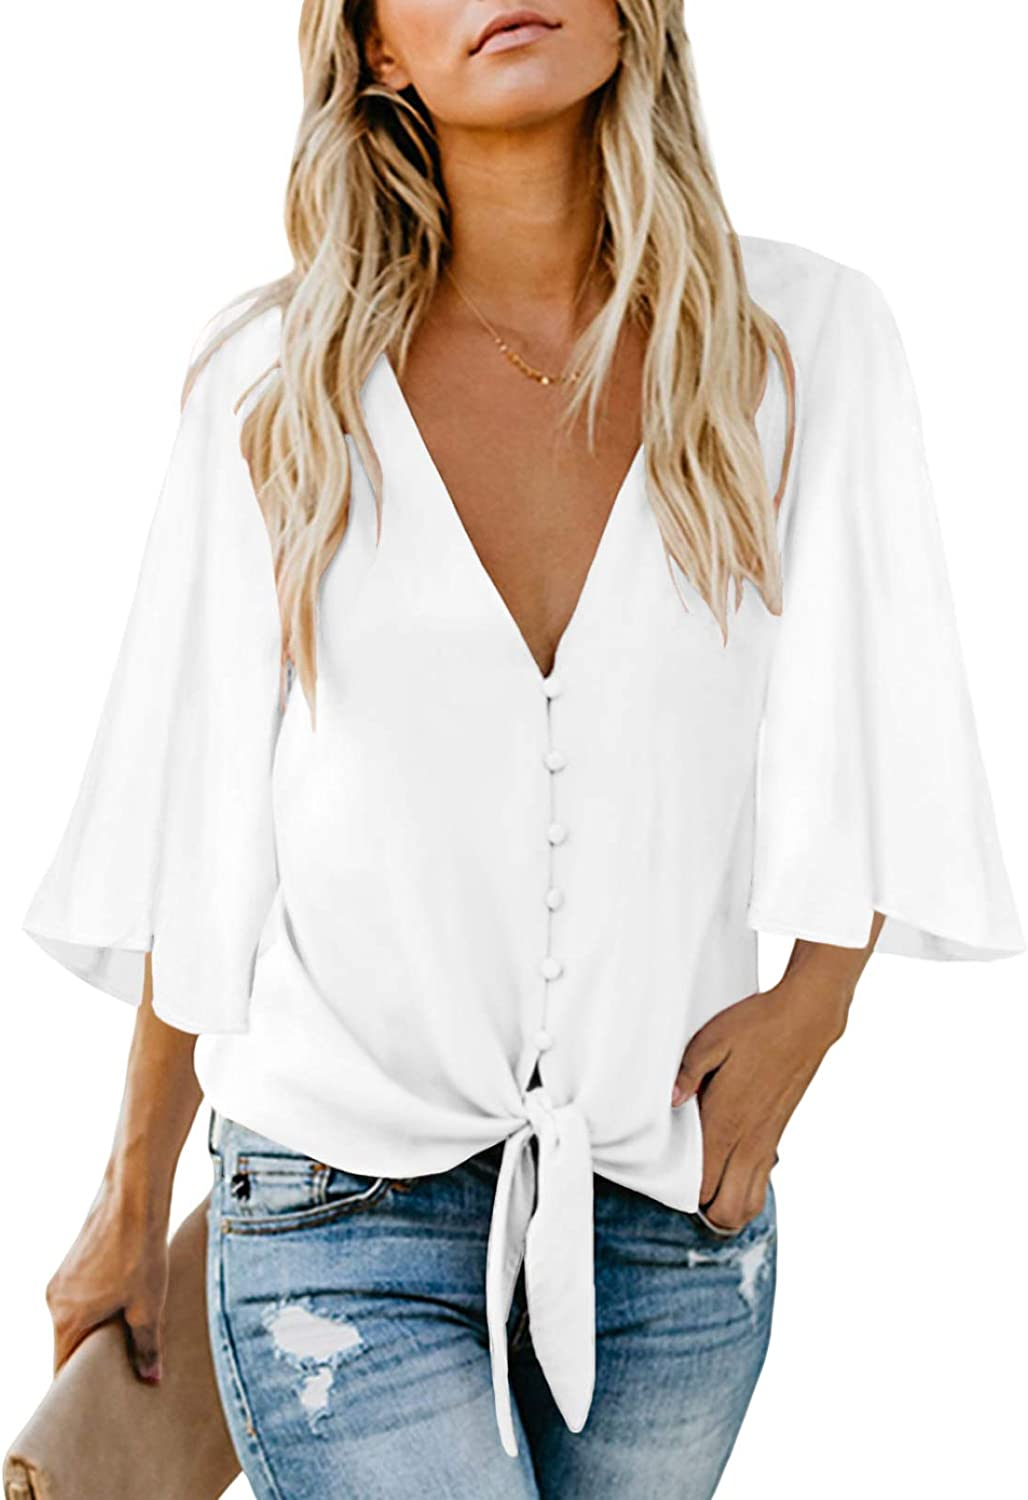 Zecilbo Women's Button Decoration Front Tie Knot Bell 3/4 Sleeve Shirt Tops V Neck Casual Loose Blouses